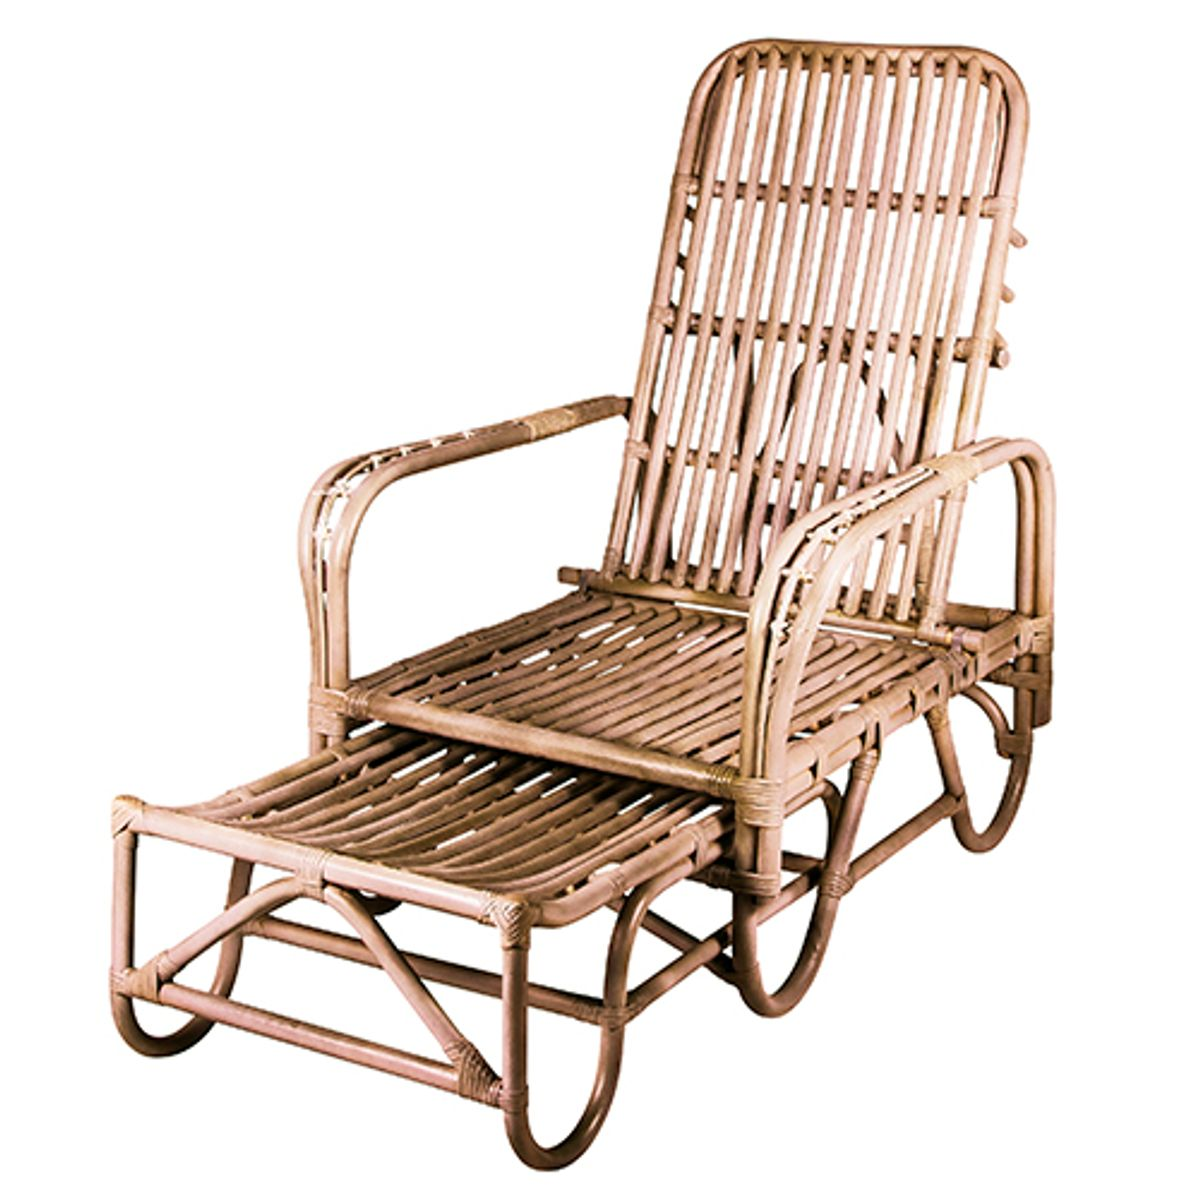 Chaise longue bain de soleil en rotin naturel alona broste decoclico - Chaise longue en rotin ...